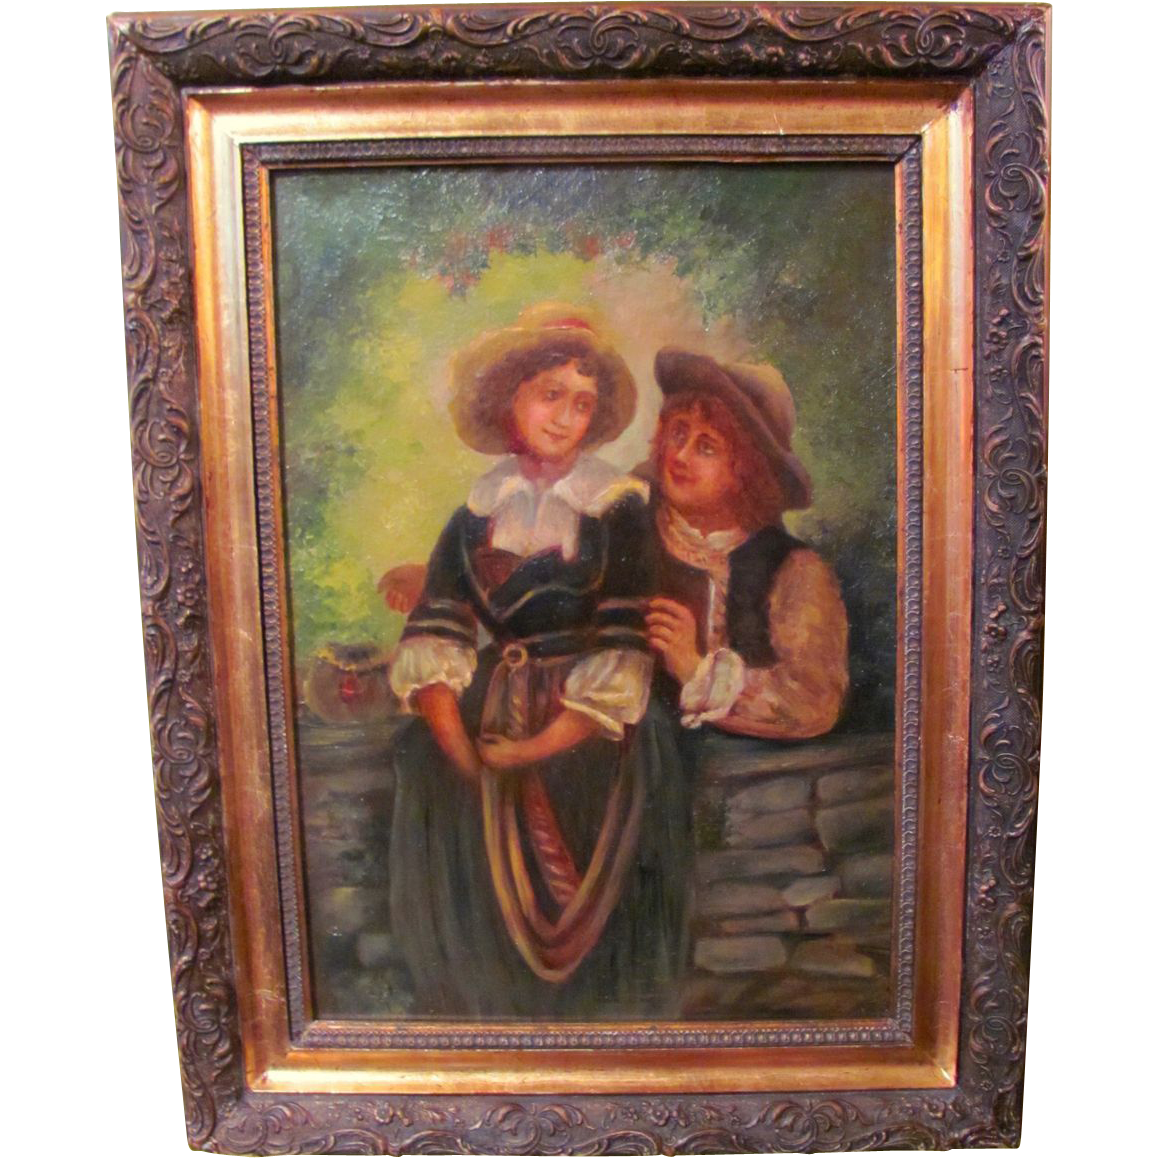 Antique American Oil on Canvas Painting Circa 1880